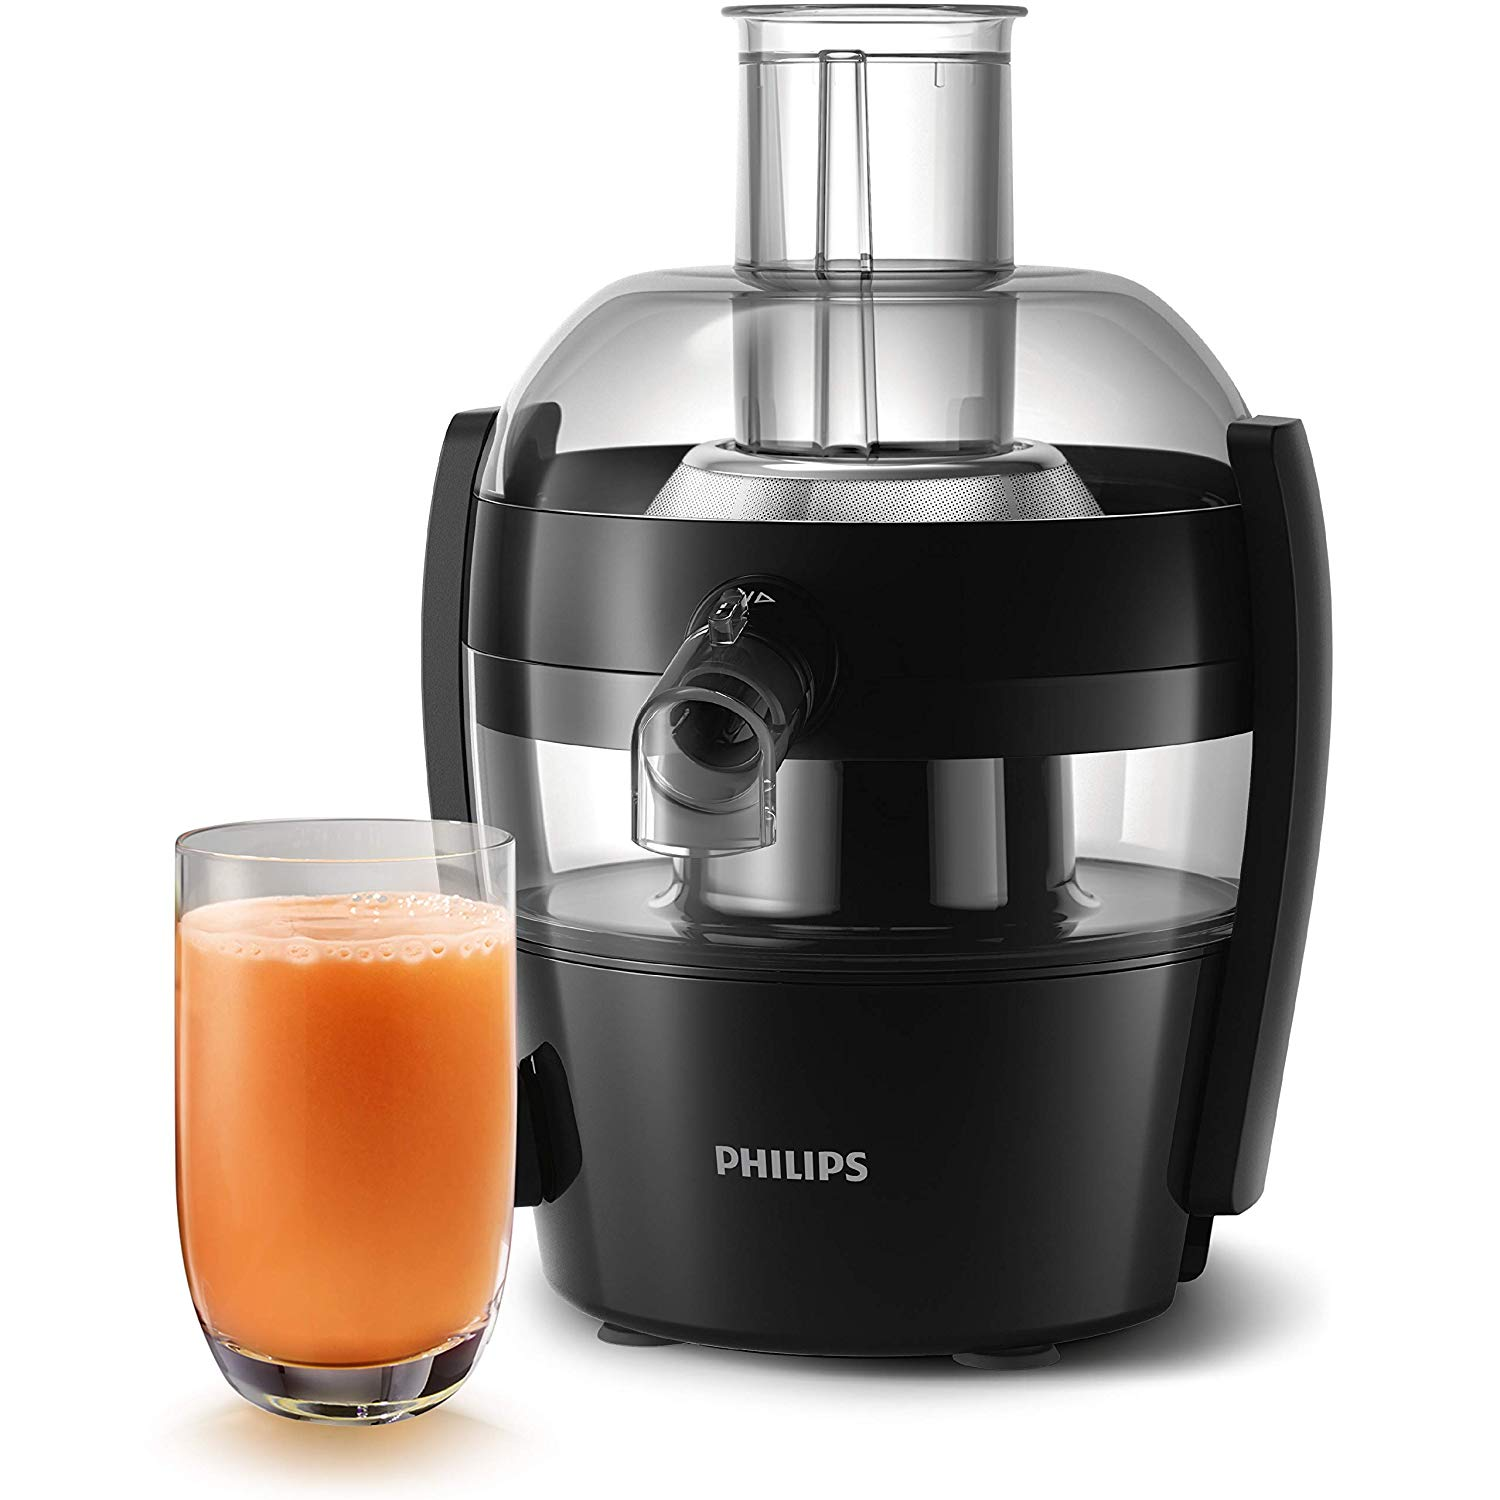 Philips 1.5L 500W Juicer / Rs 5,224